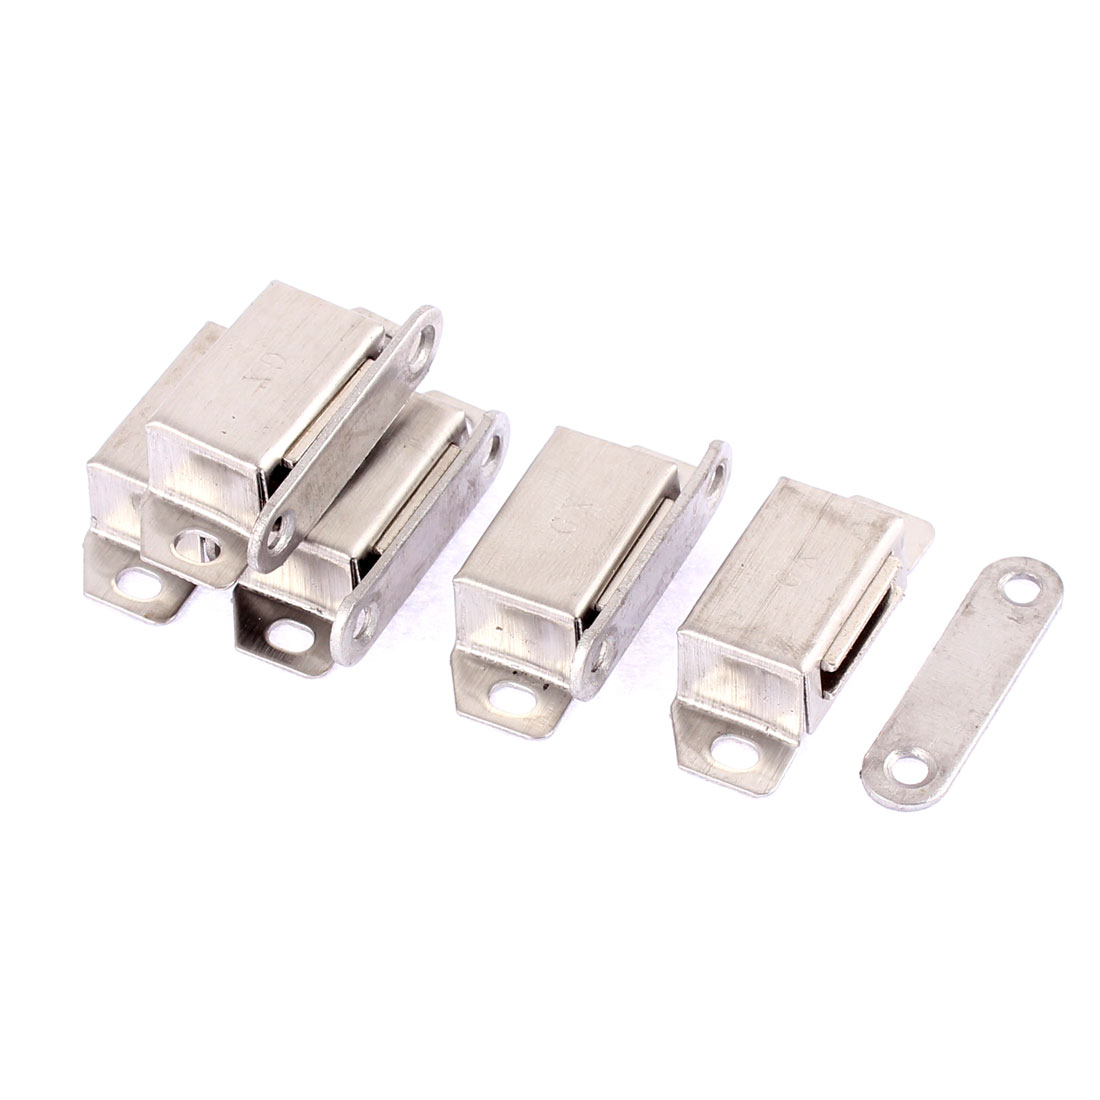 5 Pcs Cupboard Cabinet Furniture Magnetic Catch Door Latch 37mm x 16mm